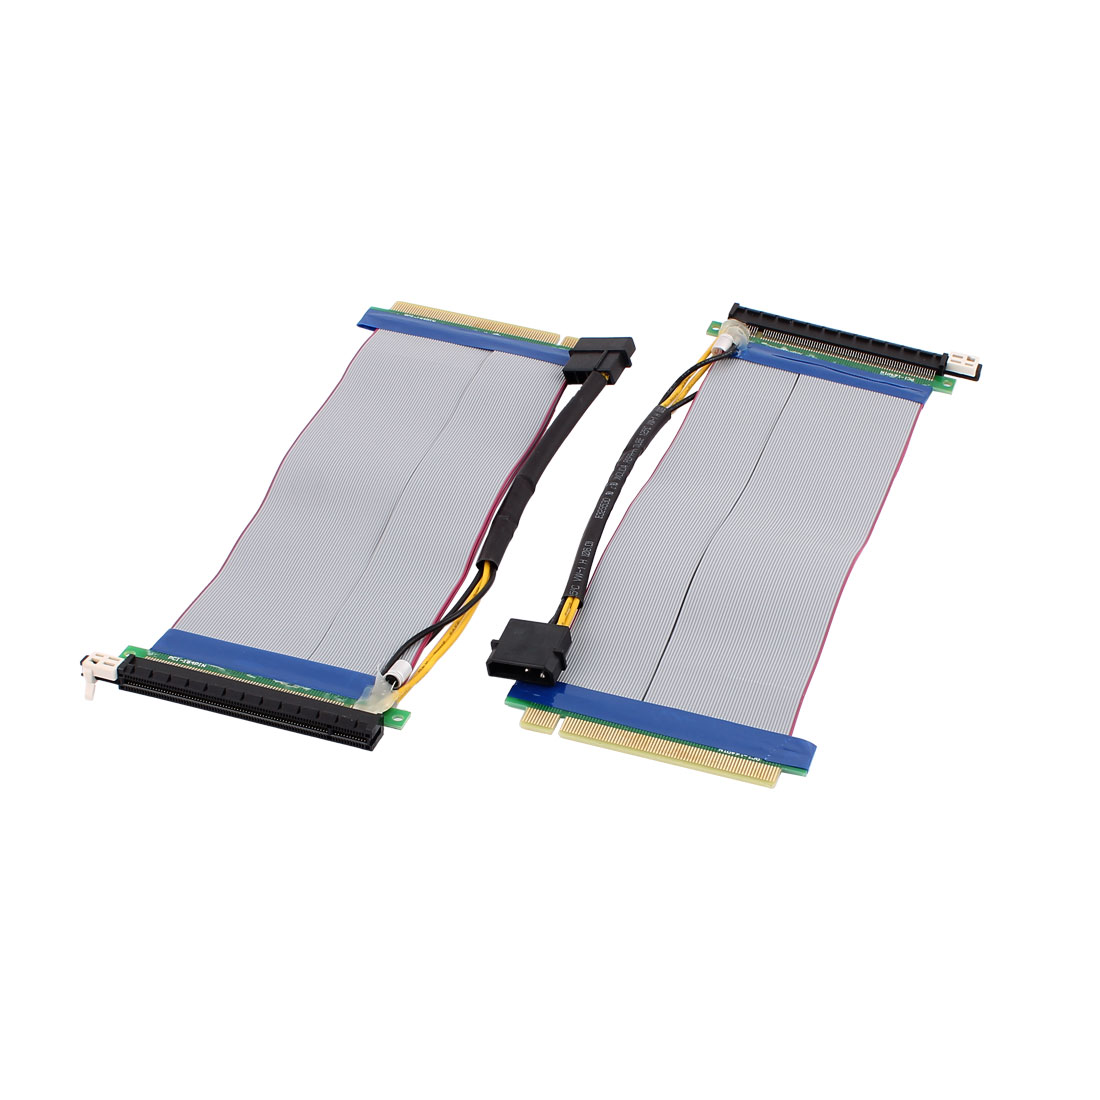 2 Pcs PCI-164 Riser Card Flexible Extension Cable for 1U/2U Rackmount Chassis